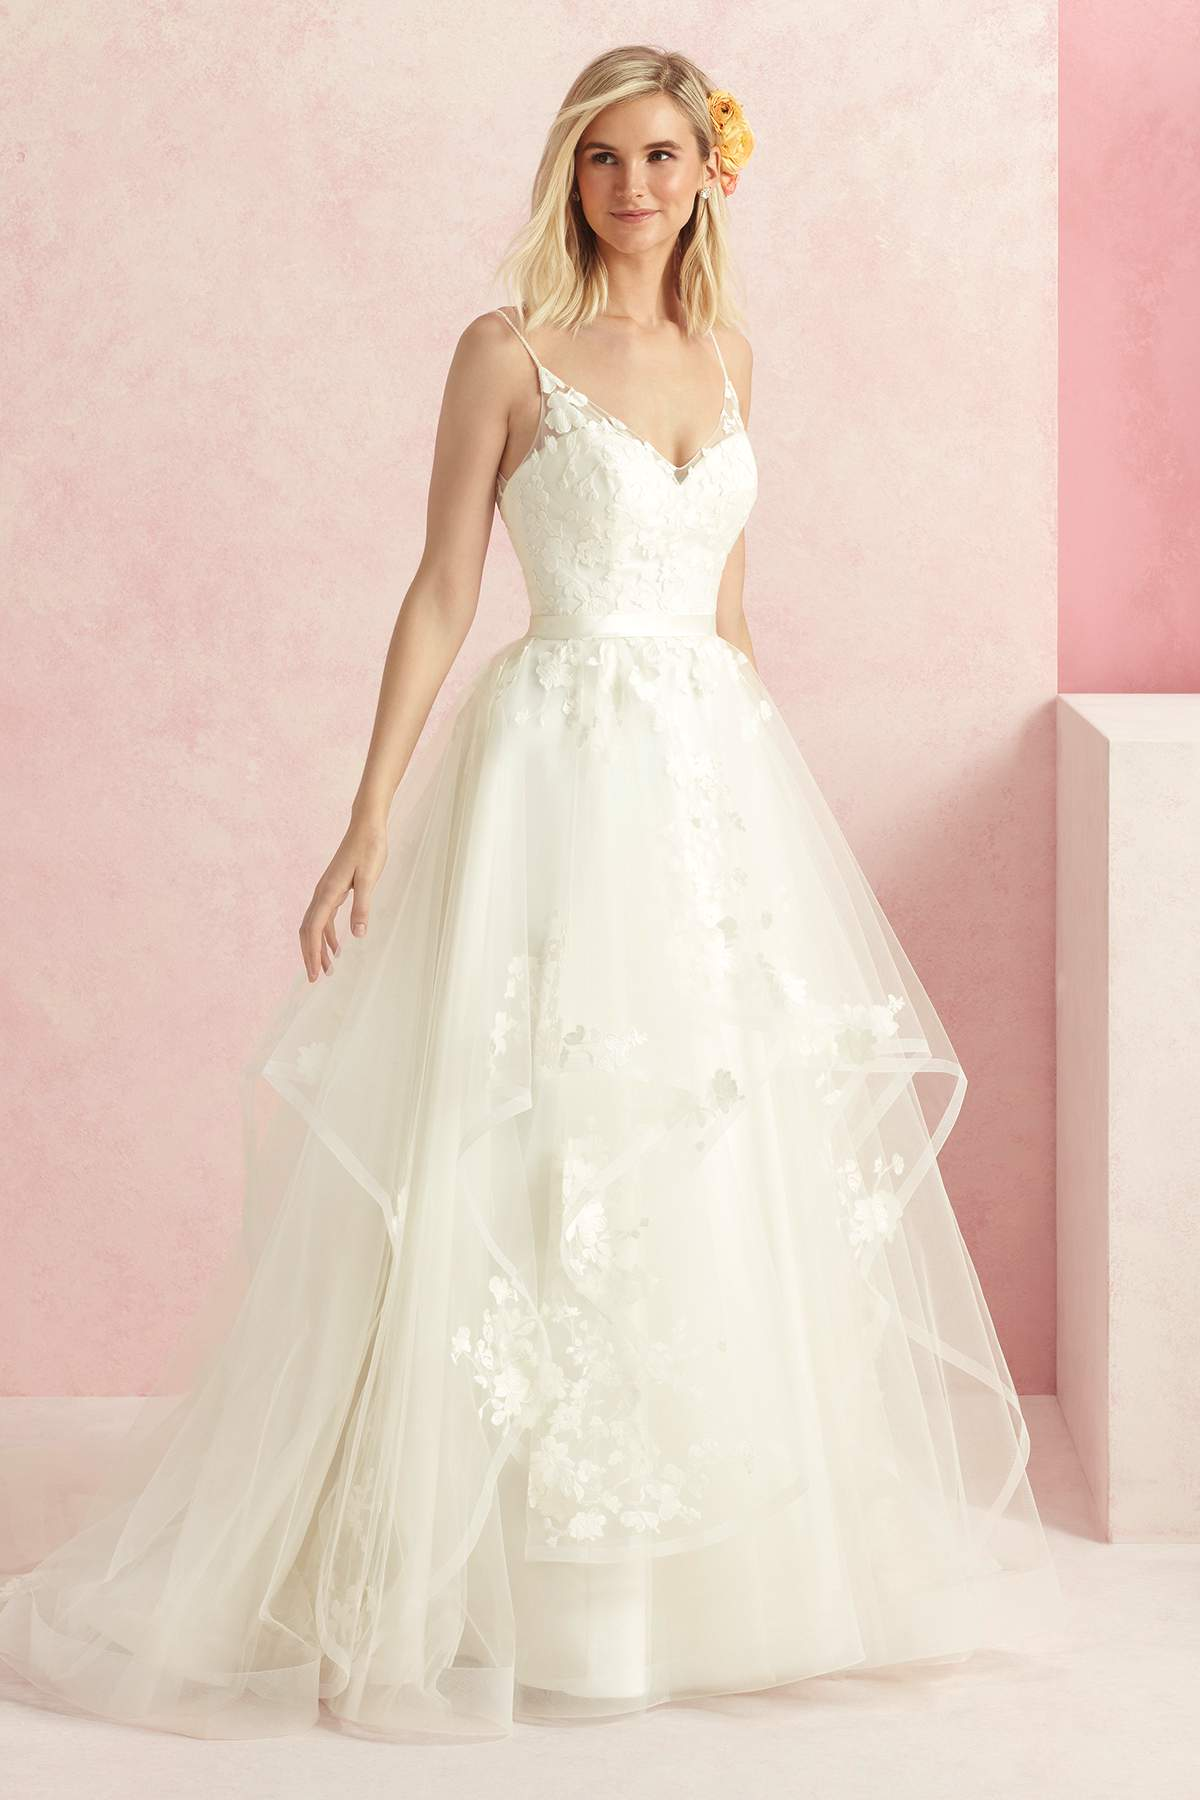 Sweet by Beloved by Casablanca Bridal - Find Your Dream Dress